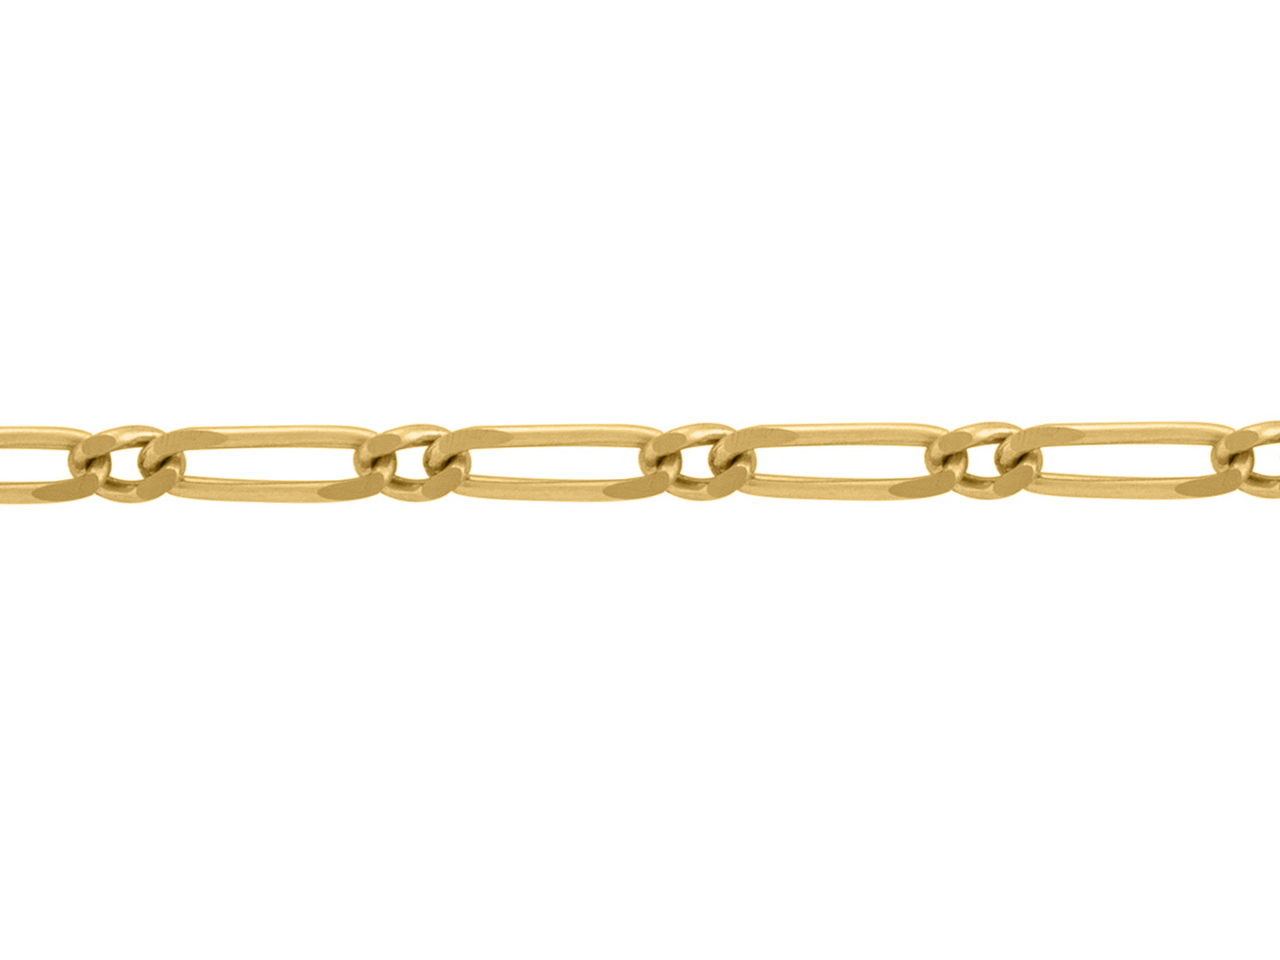 Chaine Figaro alternée 1/1, 2,7 mm, Or jaune 18k. Réf. 00894